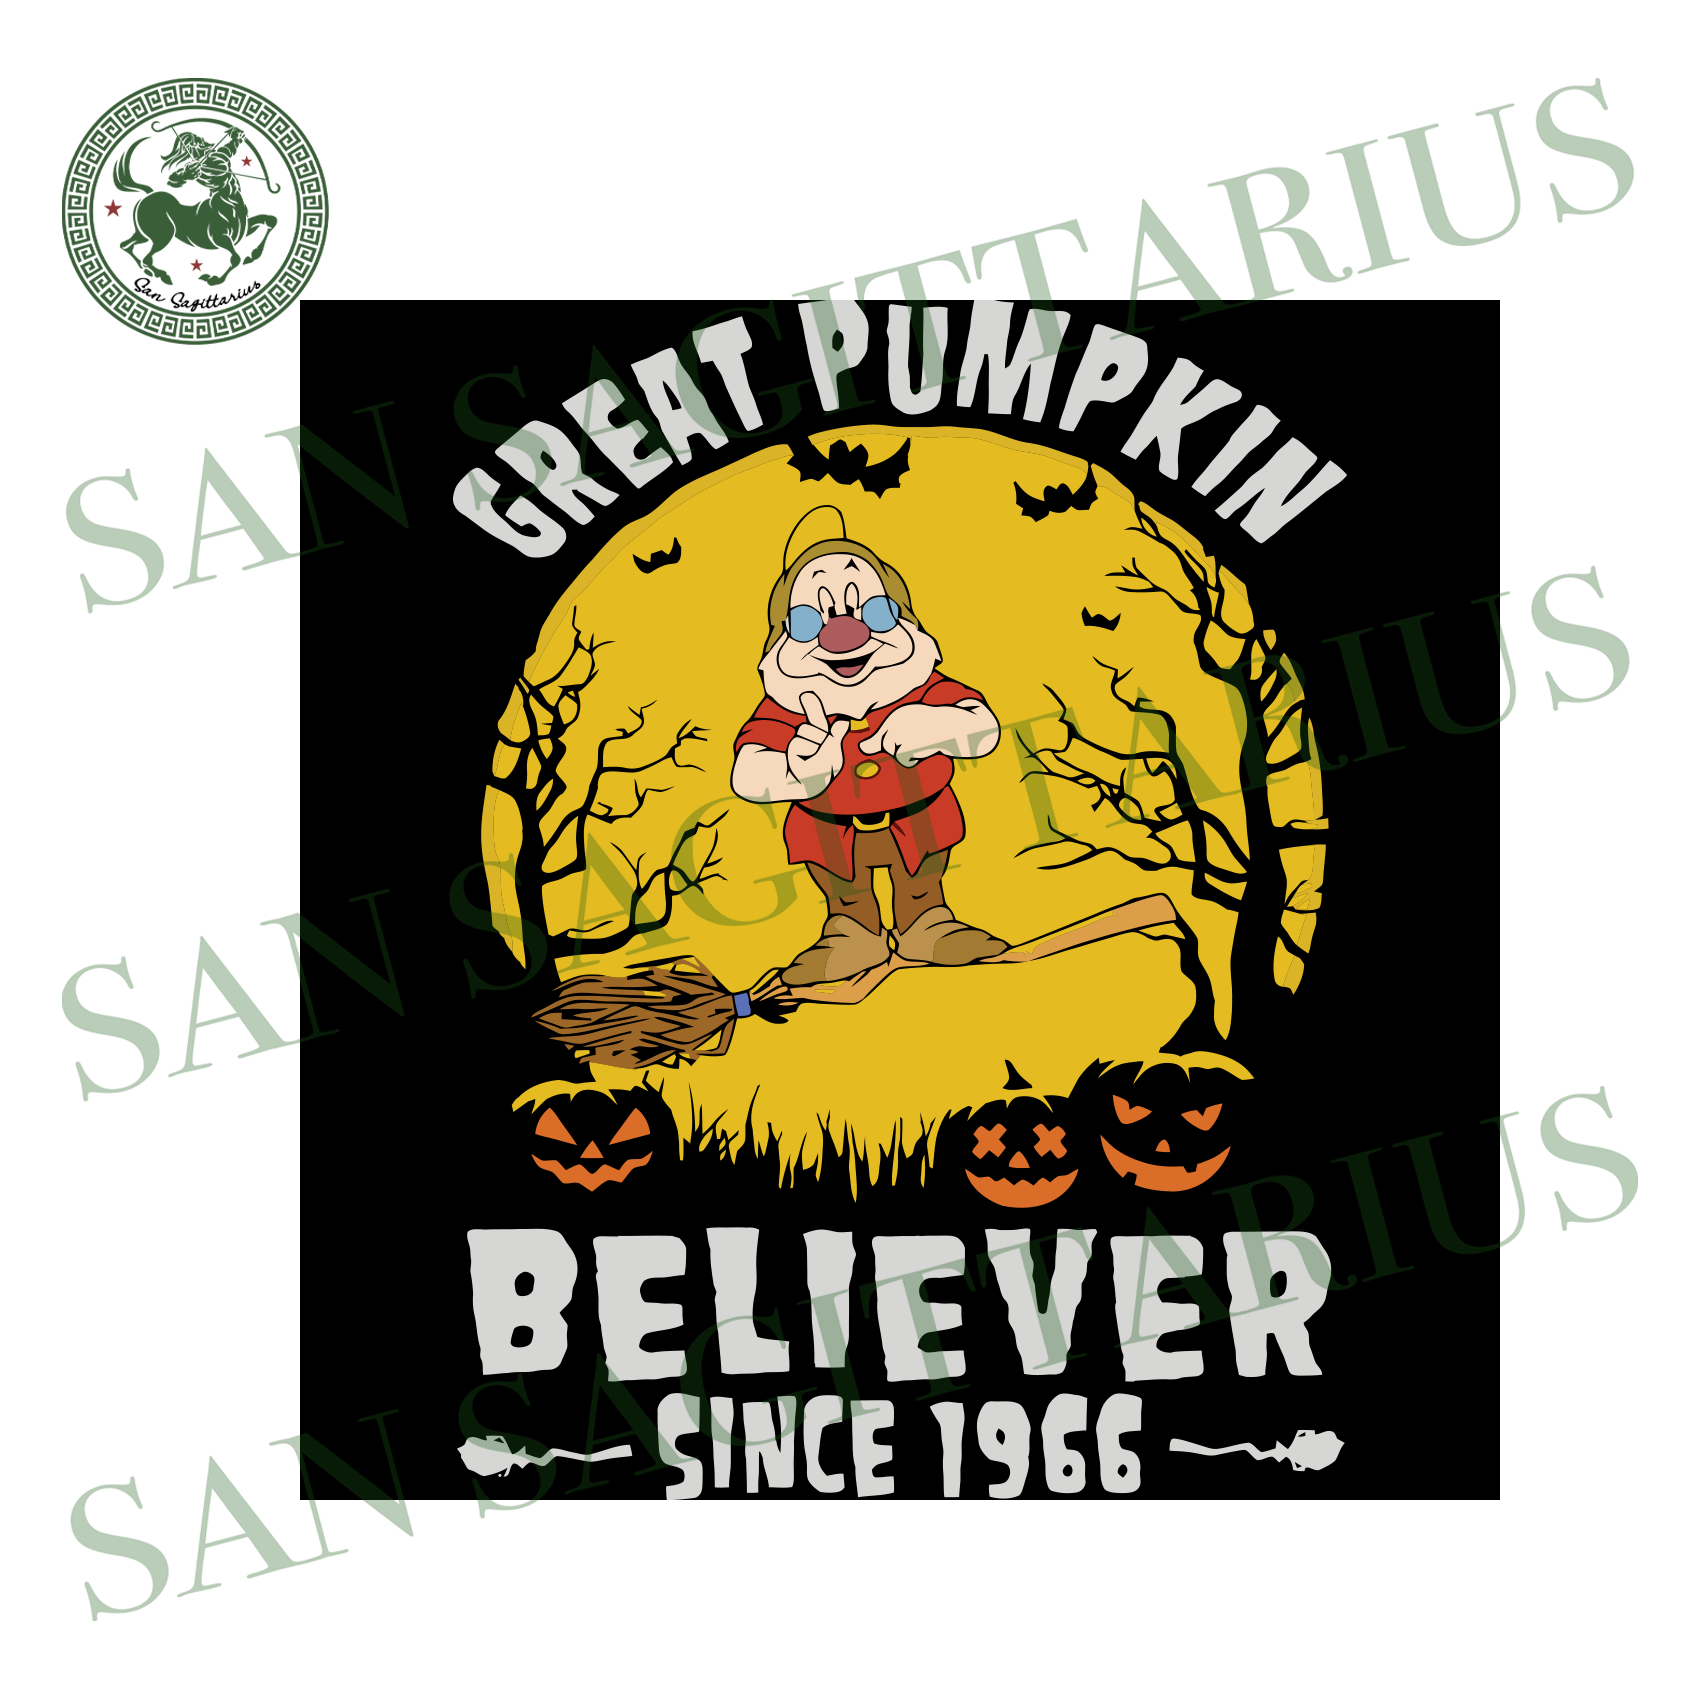 Doc Dwarf Great Pumpkin Believer Since 1966, Halloween Svg, Happy Halloween, Halloween Shirt, Nightmare Svg, Pumpkin Svg, Disney Svg, Doc Dwarf Svg, Doc Dwarf Shirt, Doc Dwarf Gift